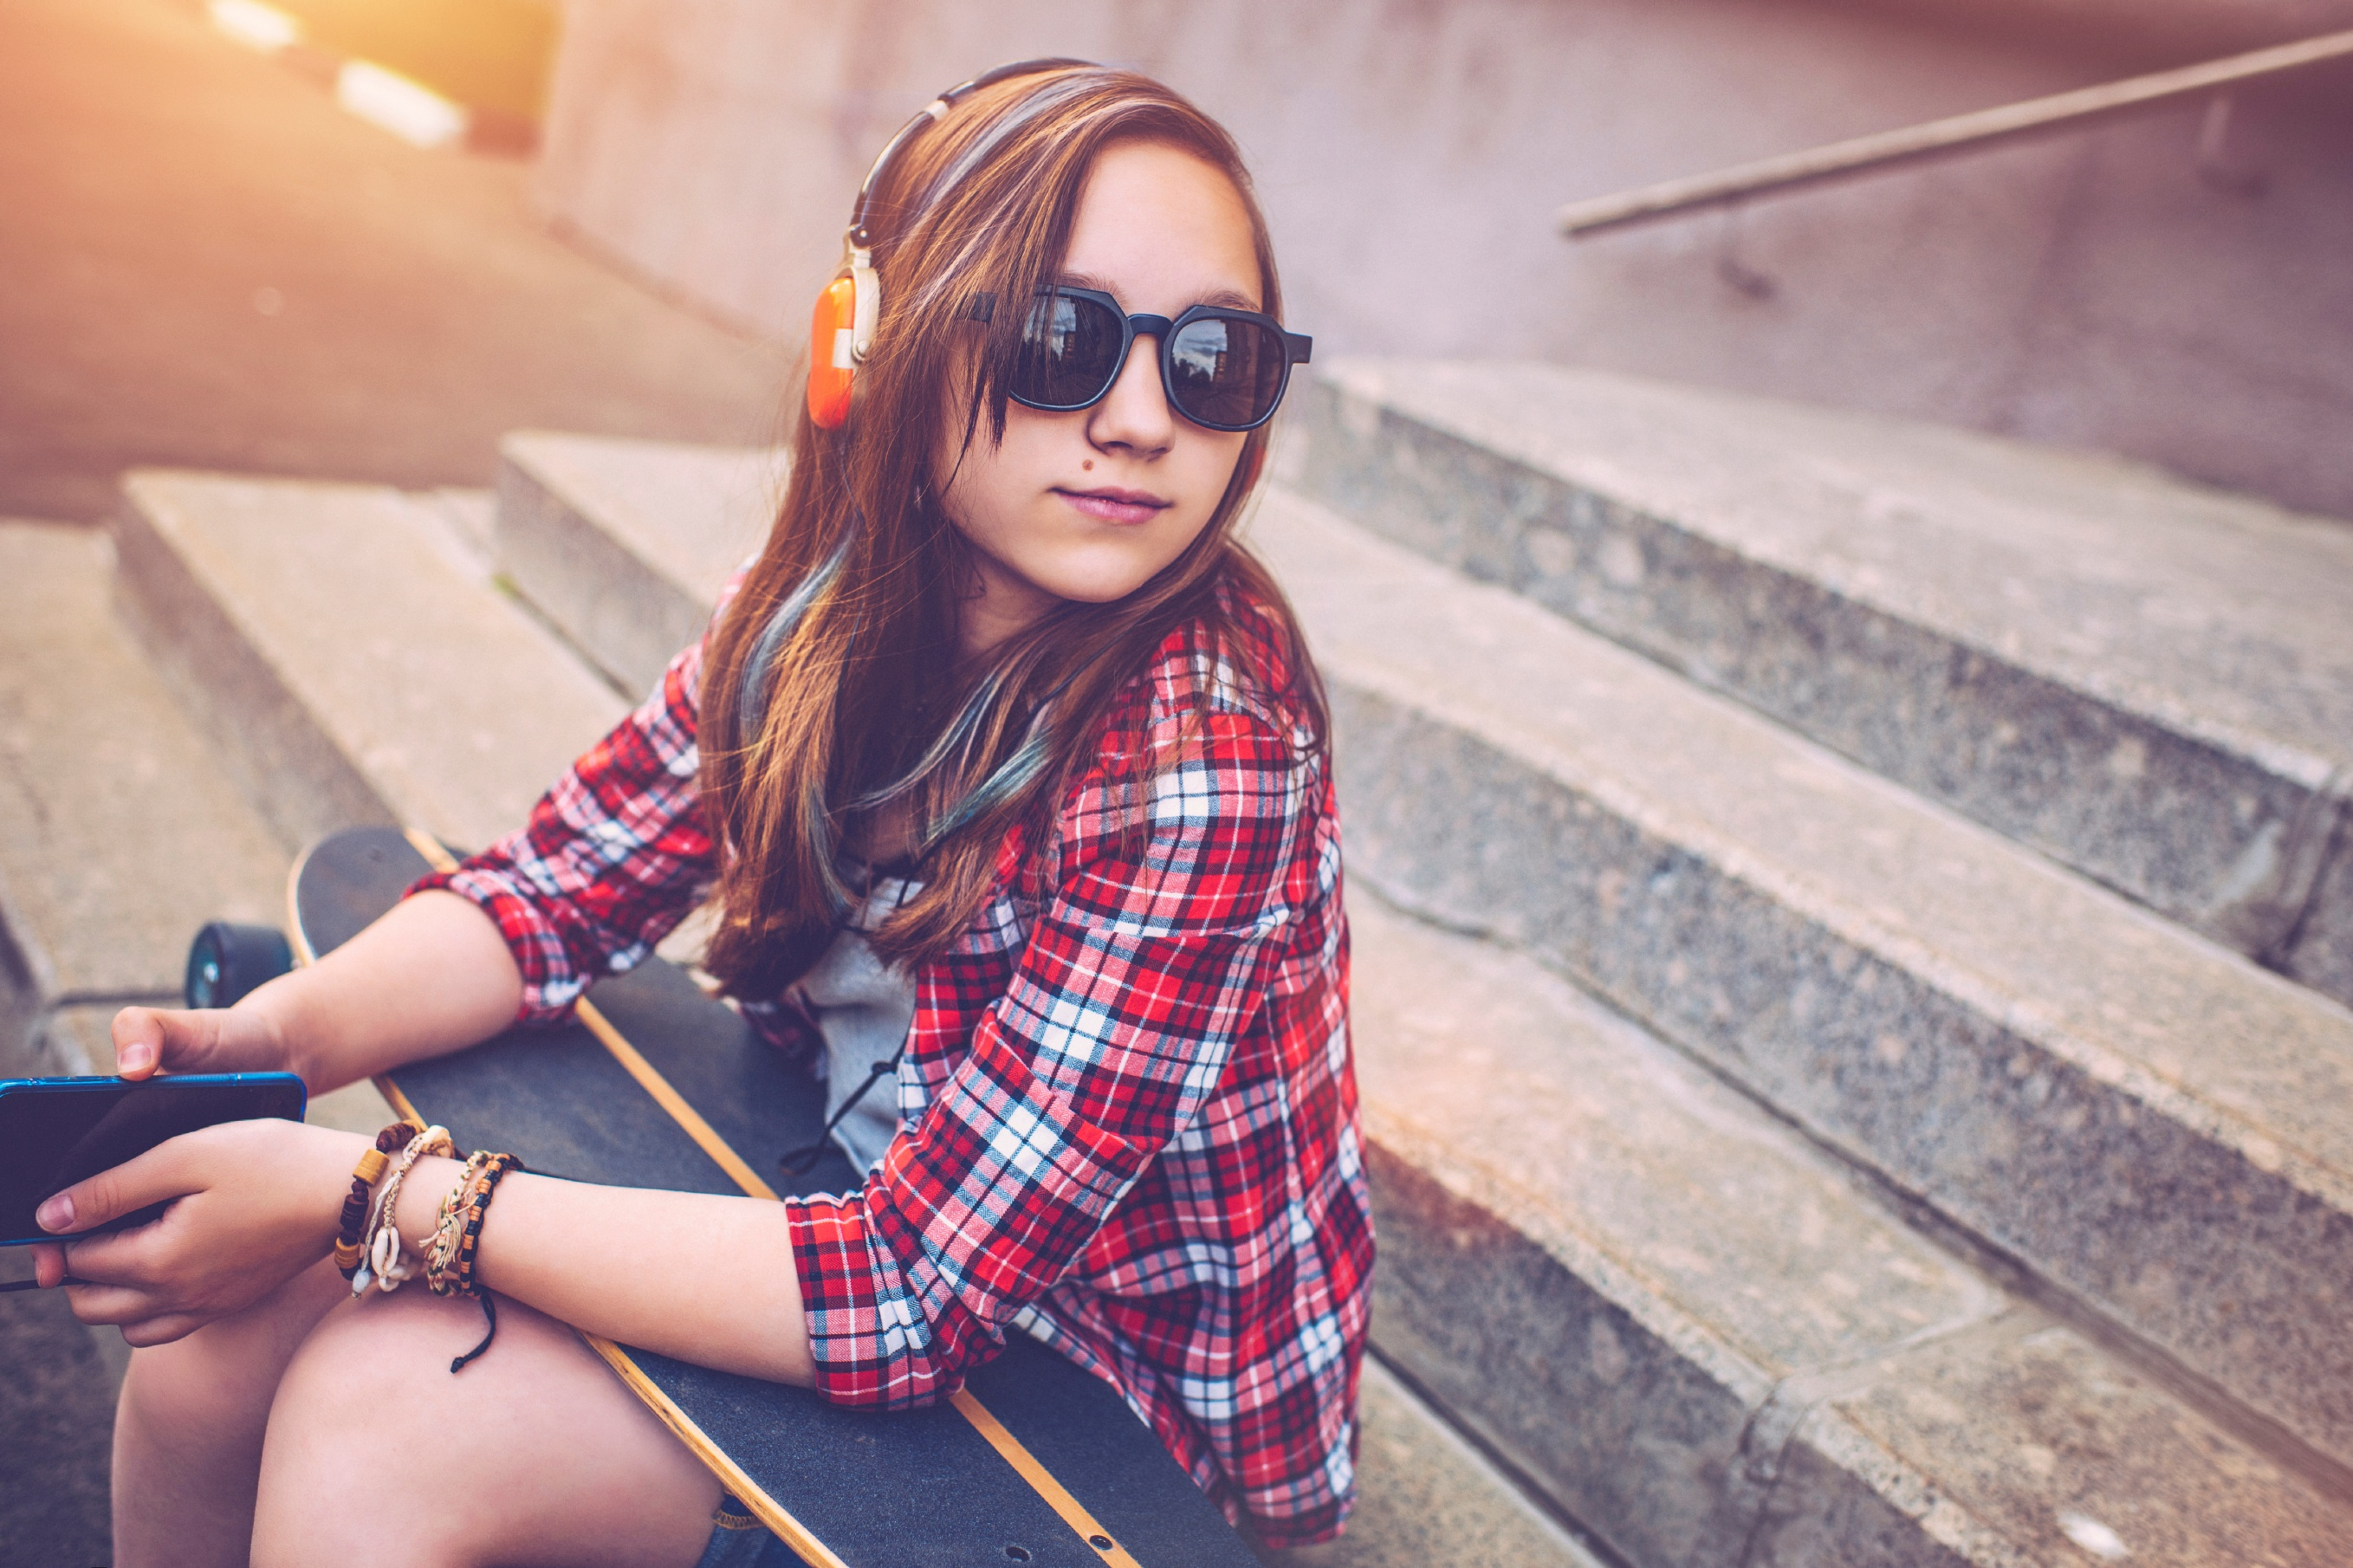 Teenage girl with a skateboard listening to music